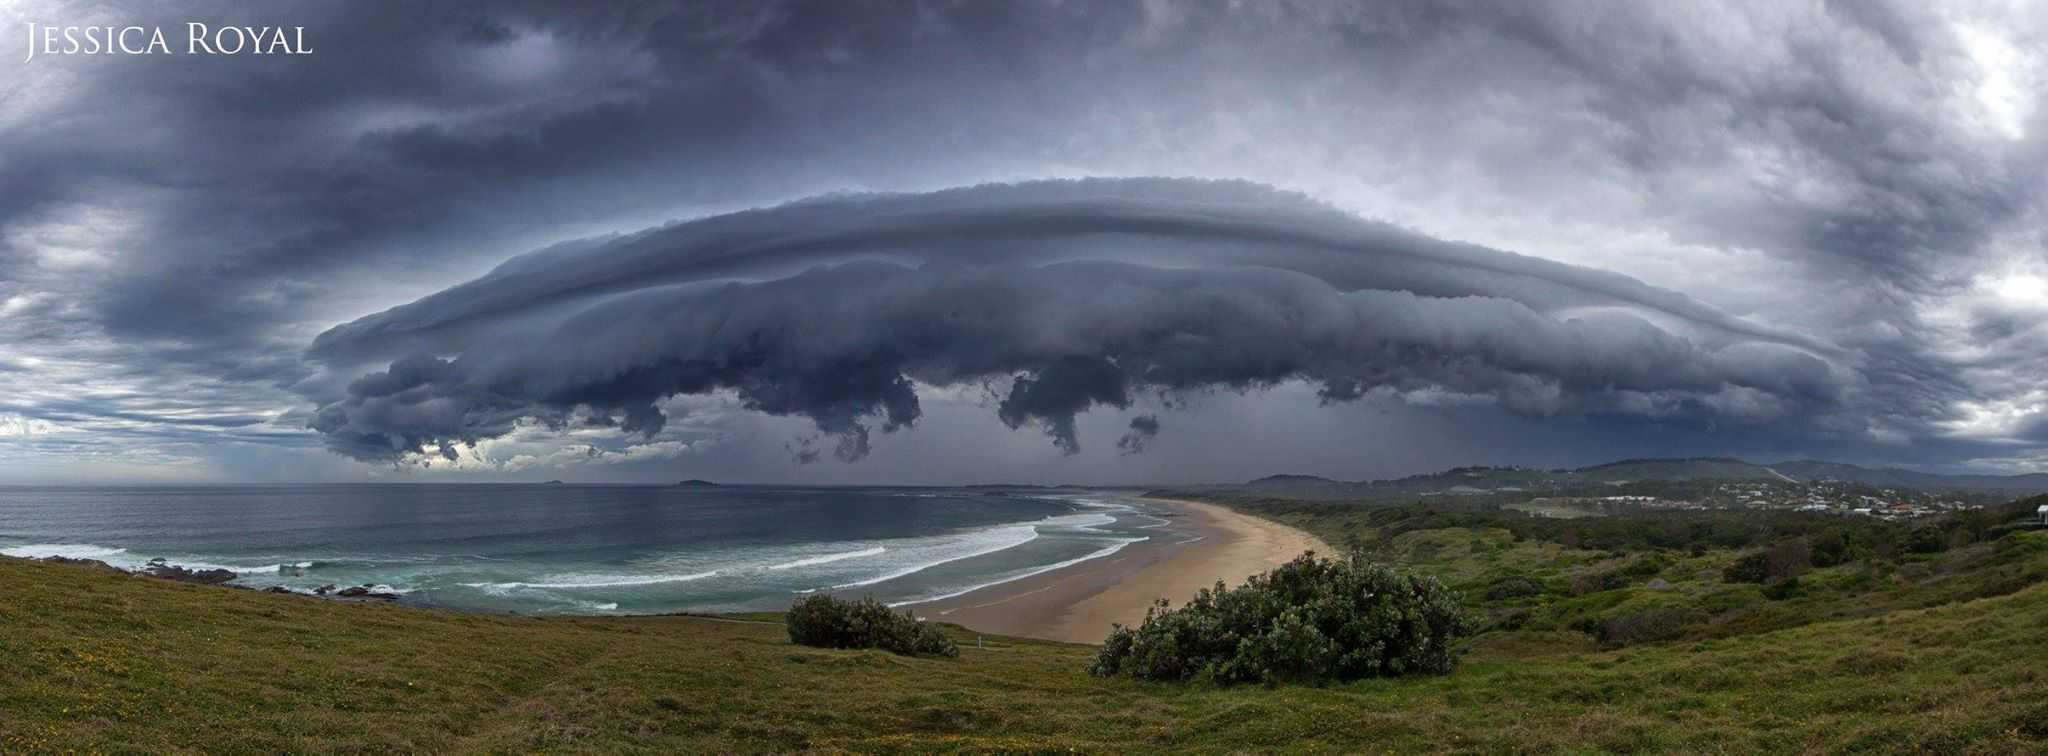 Pano from this afternoons storm that hit the Coffs Coast, NSW. Didn't make it to the spot I wanted, but the local headland was just as good